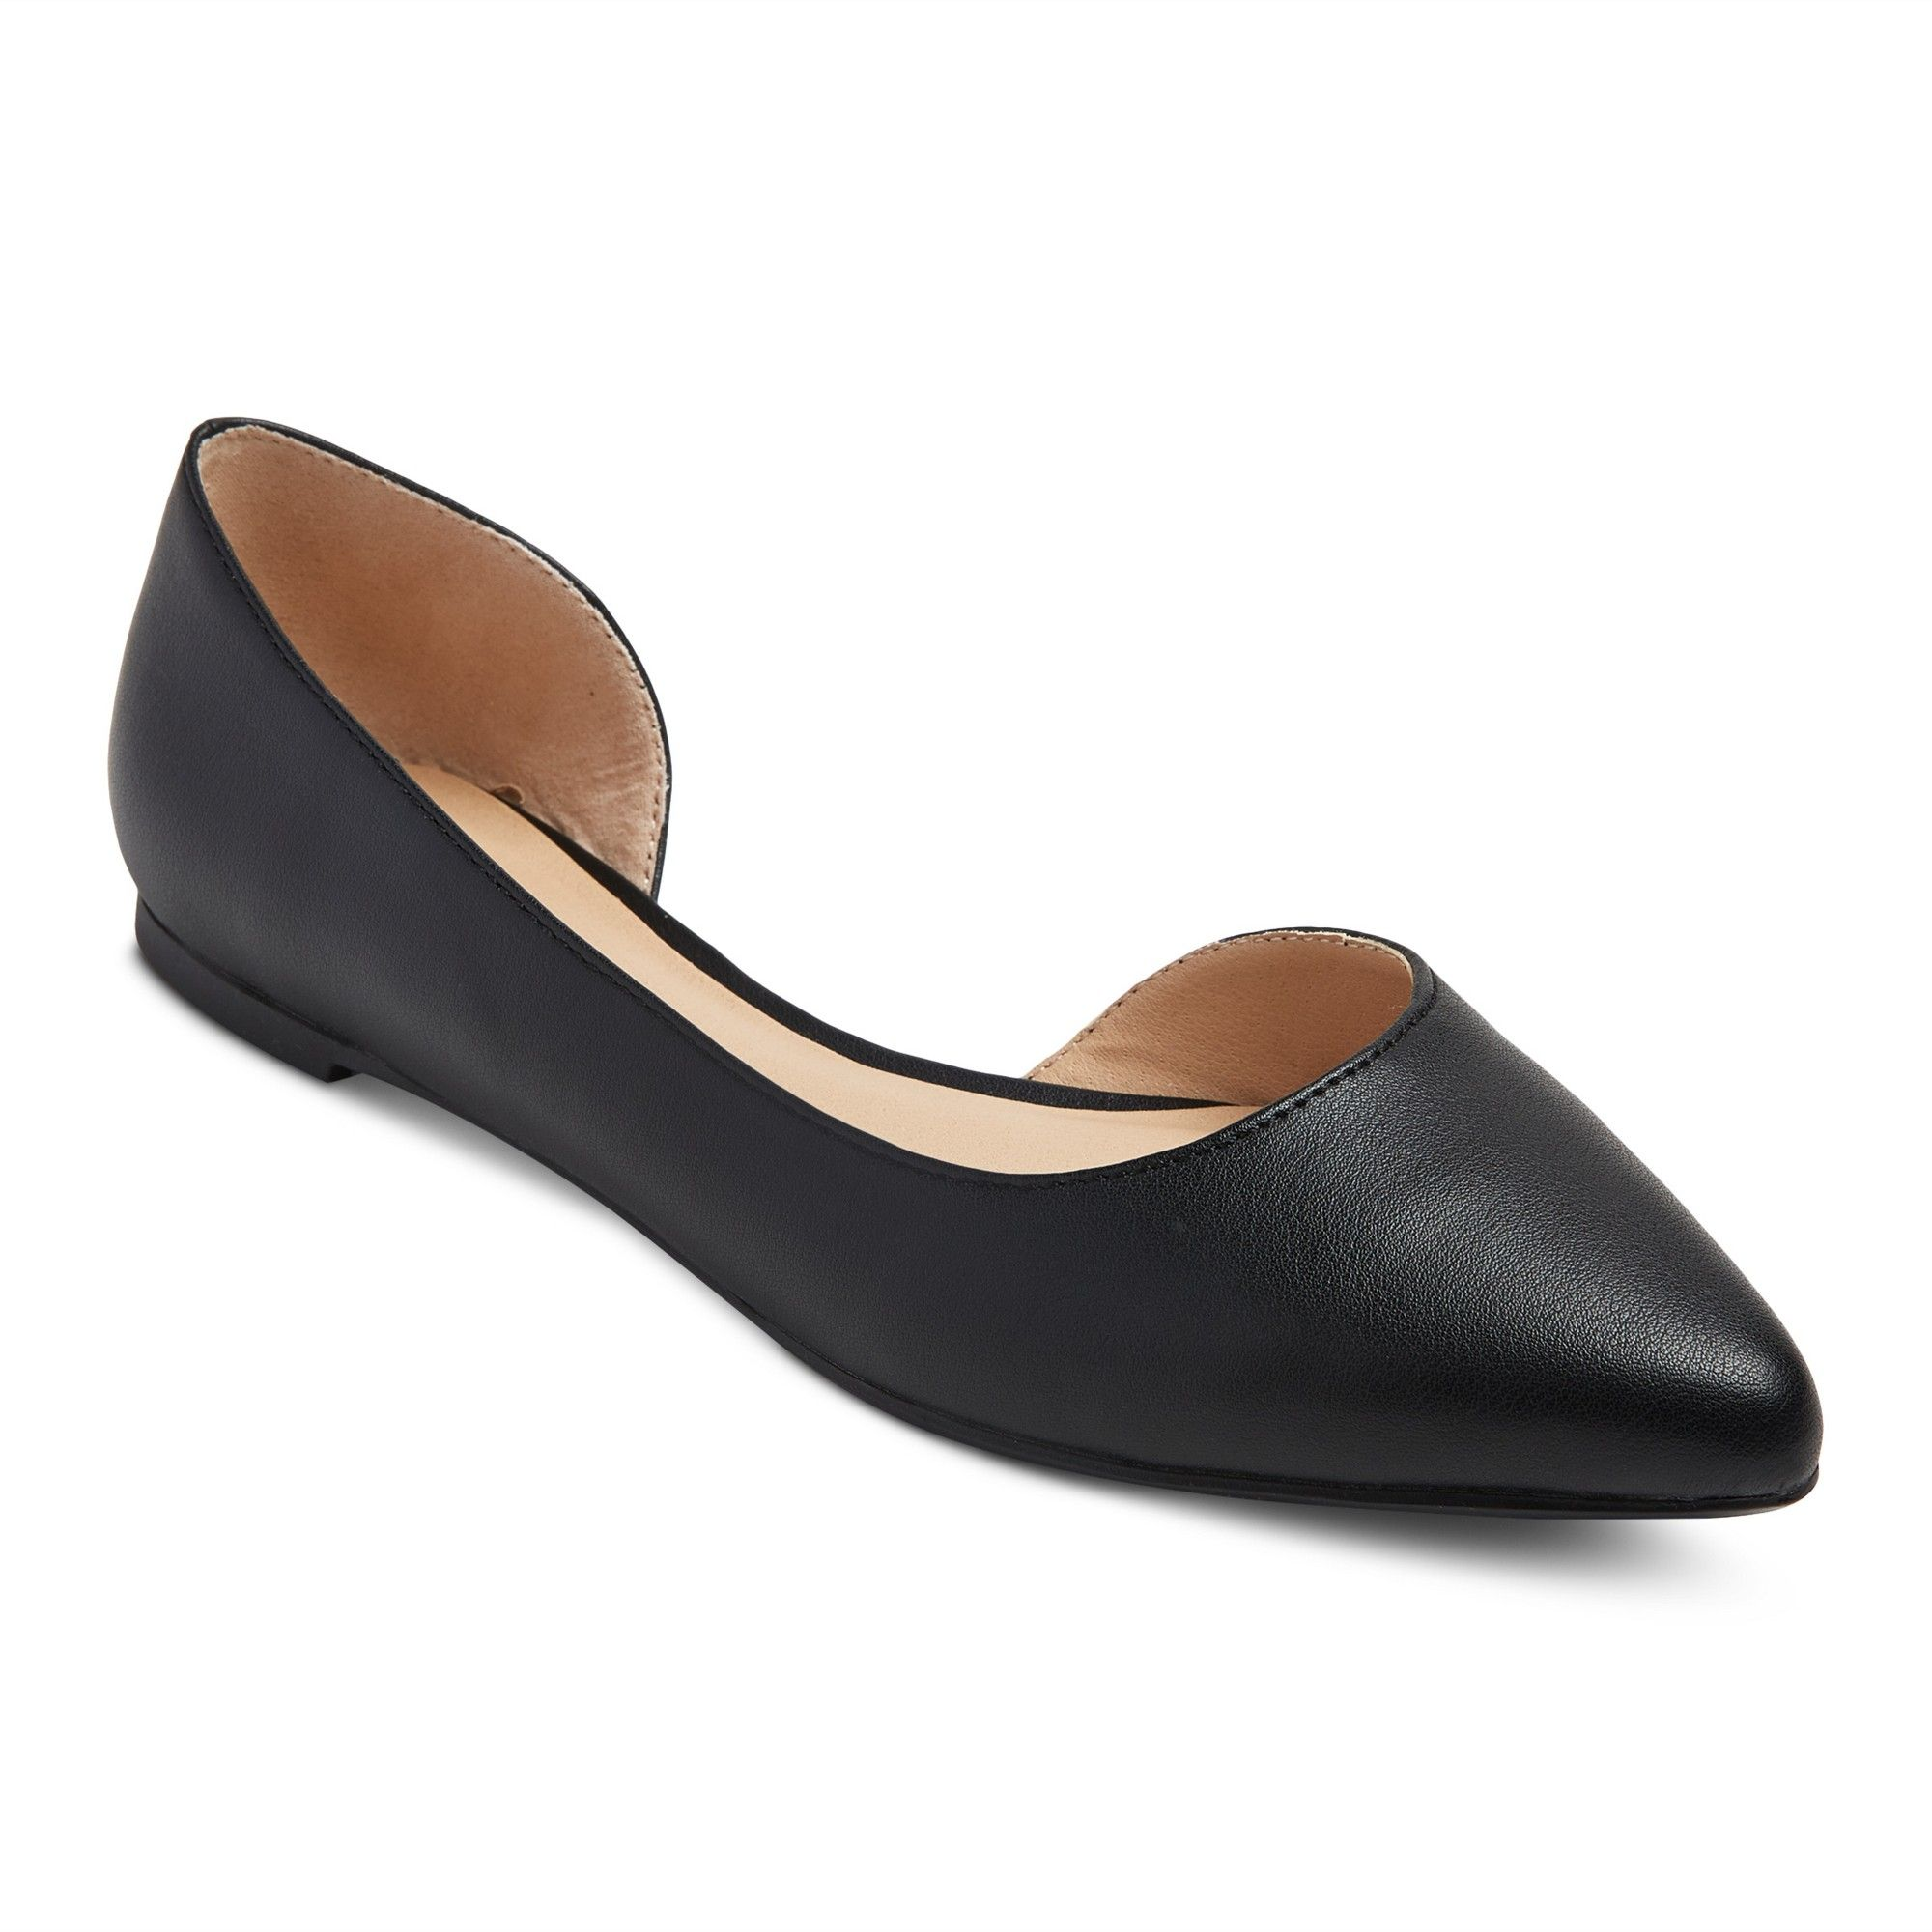 MOSSIMO Brown Round Toe Ballet Flats Shoe Womens 9 Med Faux Leather Slip On Work